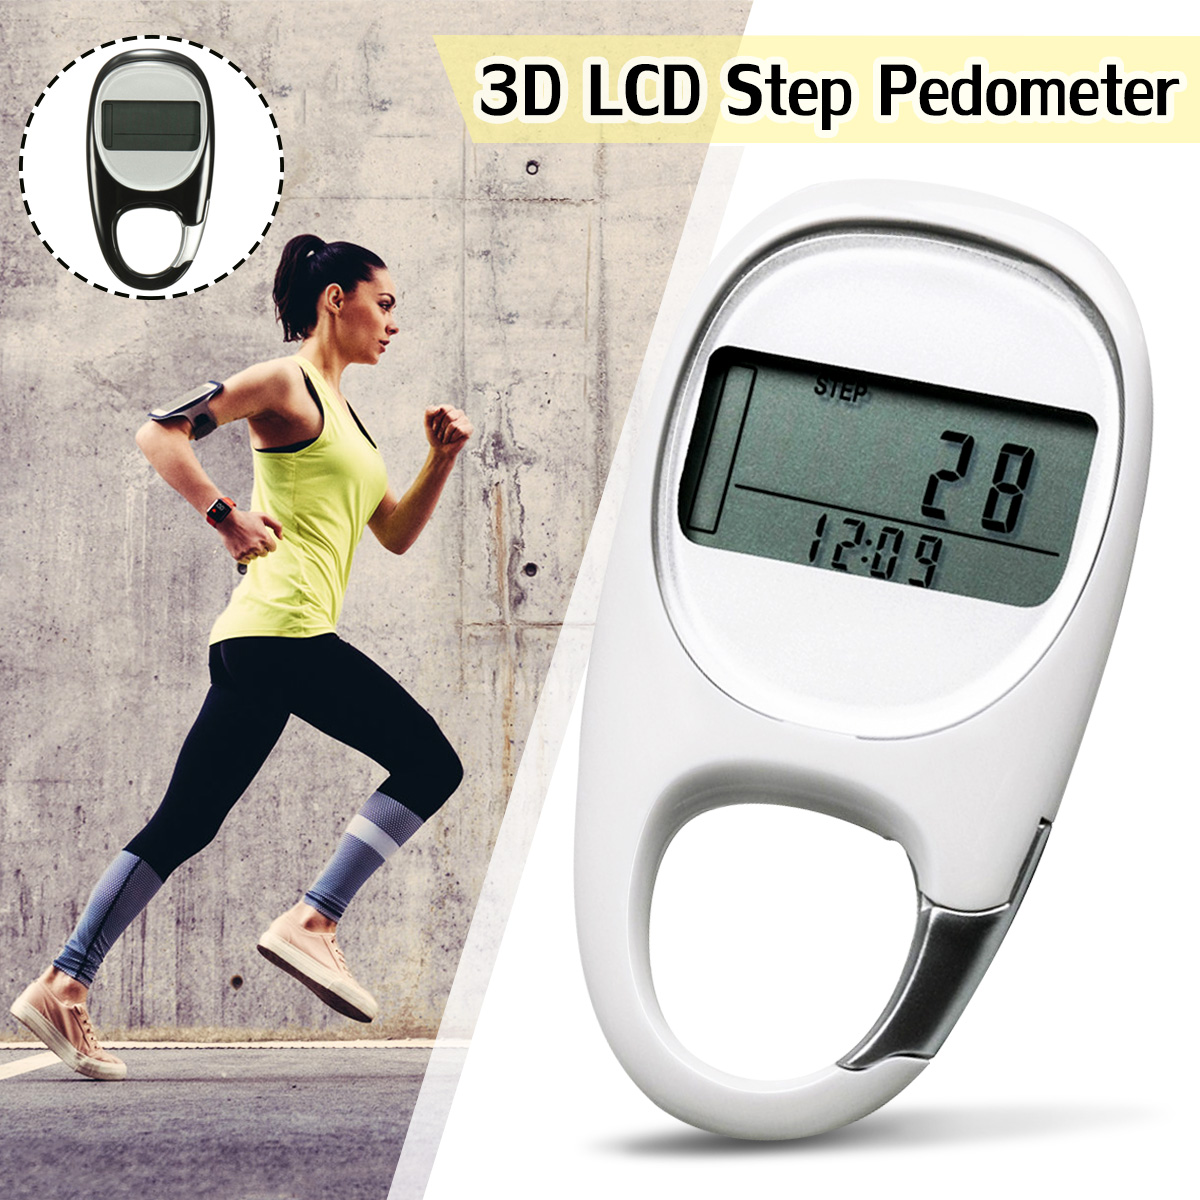 KeyChain 3D Smart Sensor Run Step Pedometer Carabiner Walking Motion Calorie LCD Display Counter Tracker+Button Battery+Manual 1 5 lcd 3d sensor multifunction pedometer storage pedometer black silver 1 x cr2032